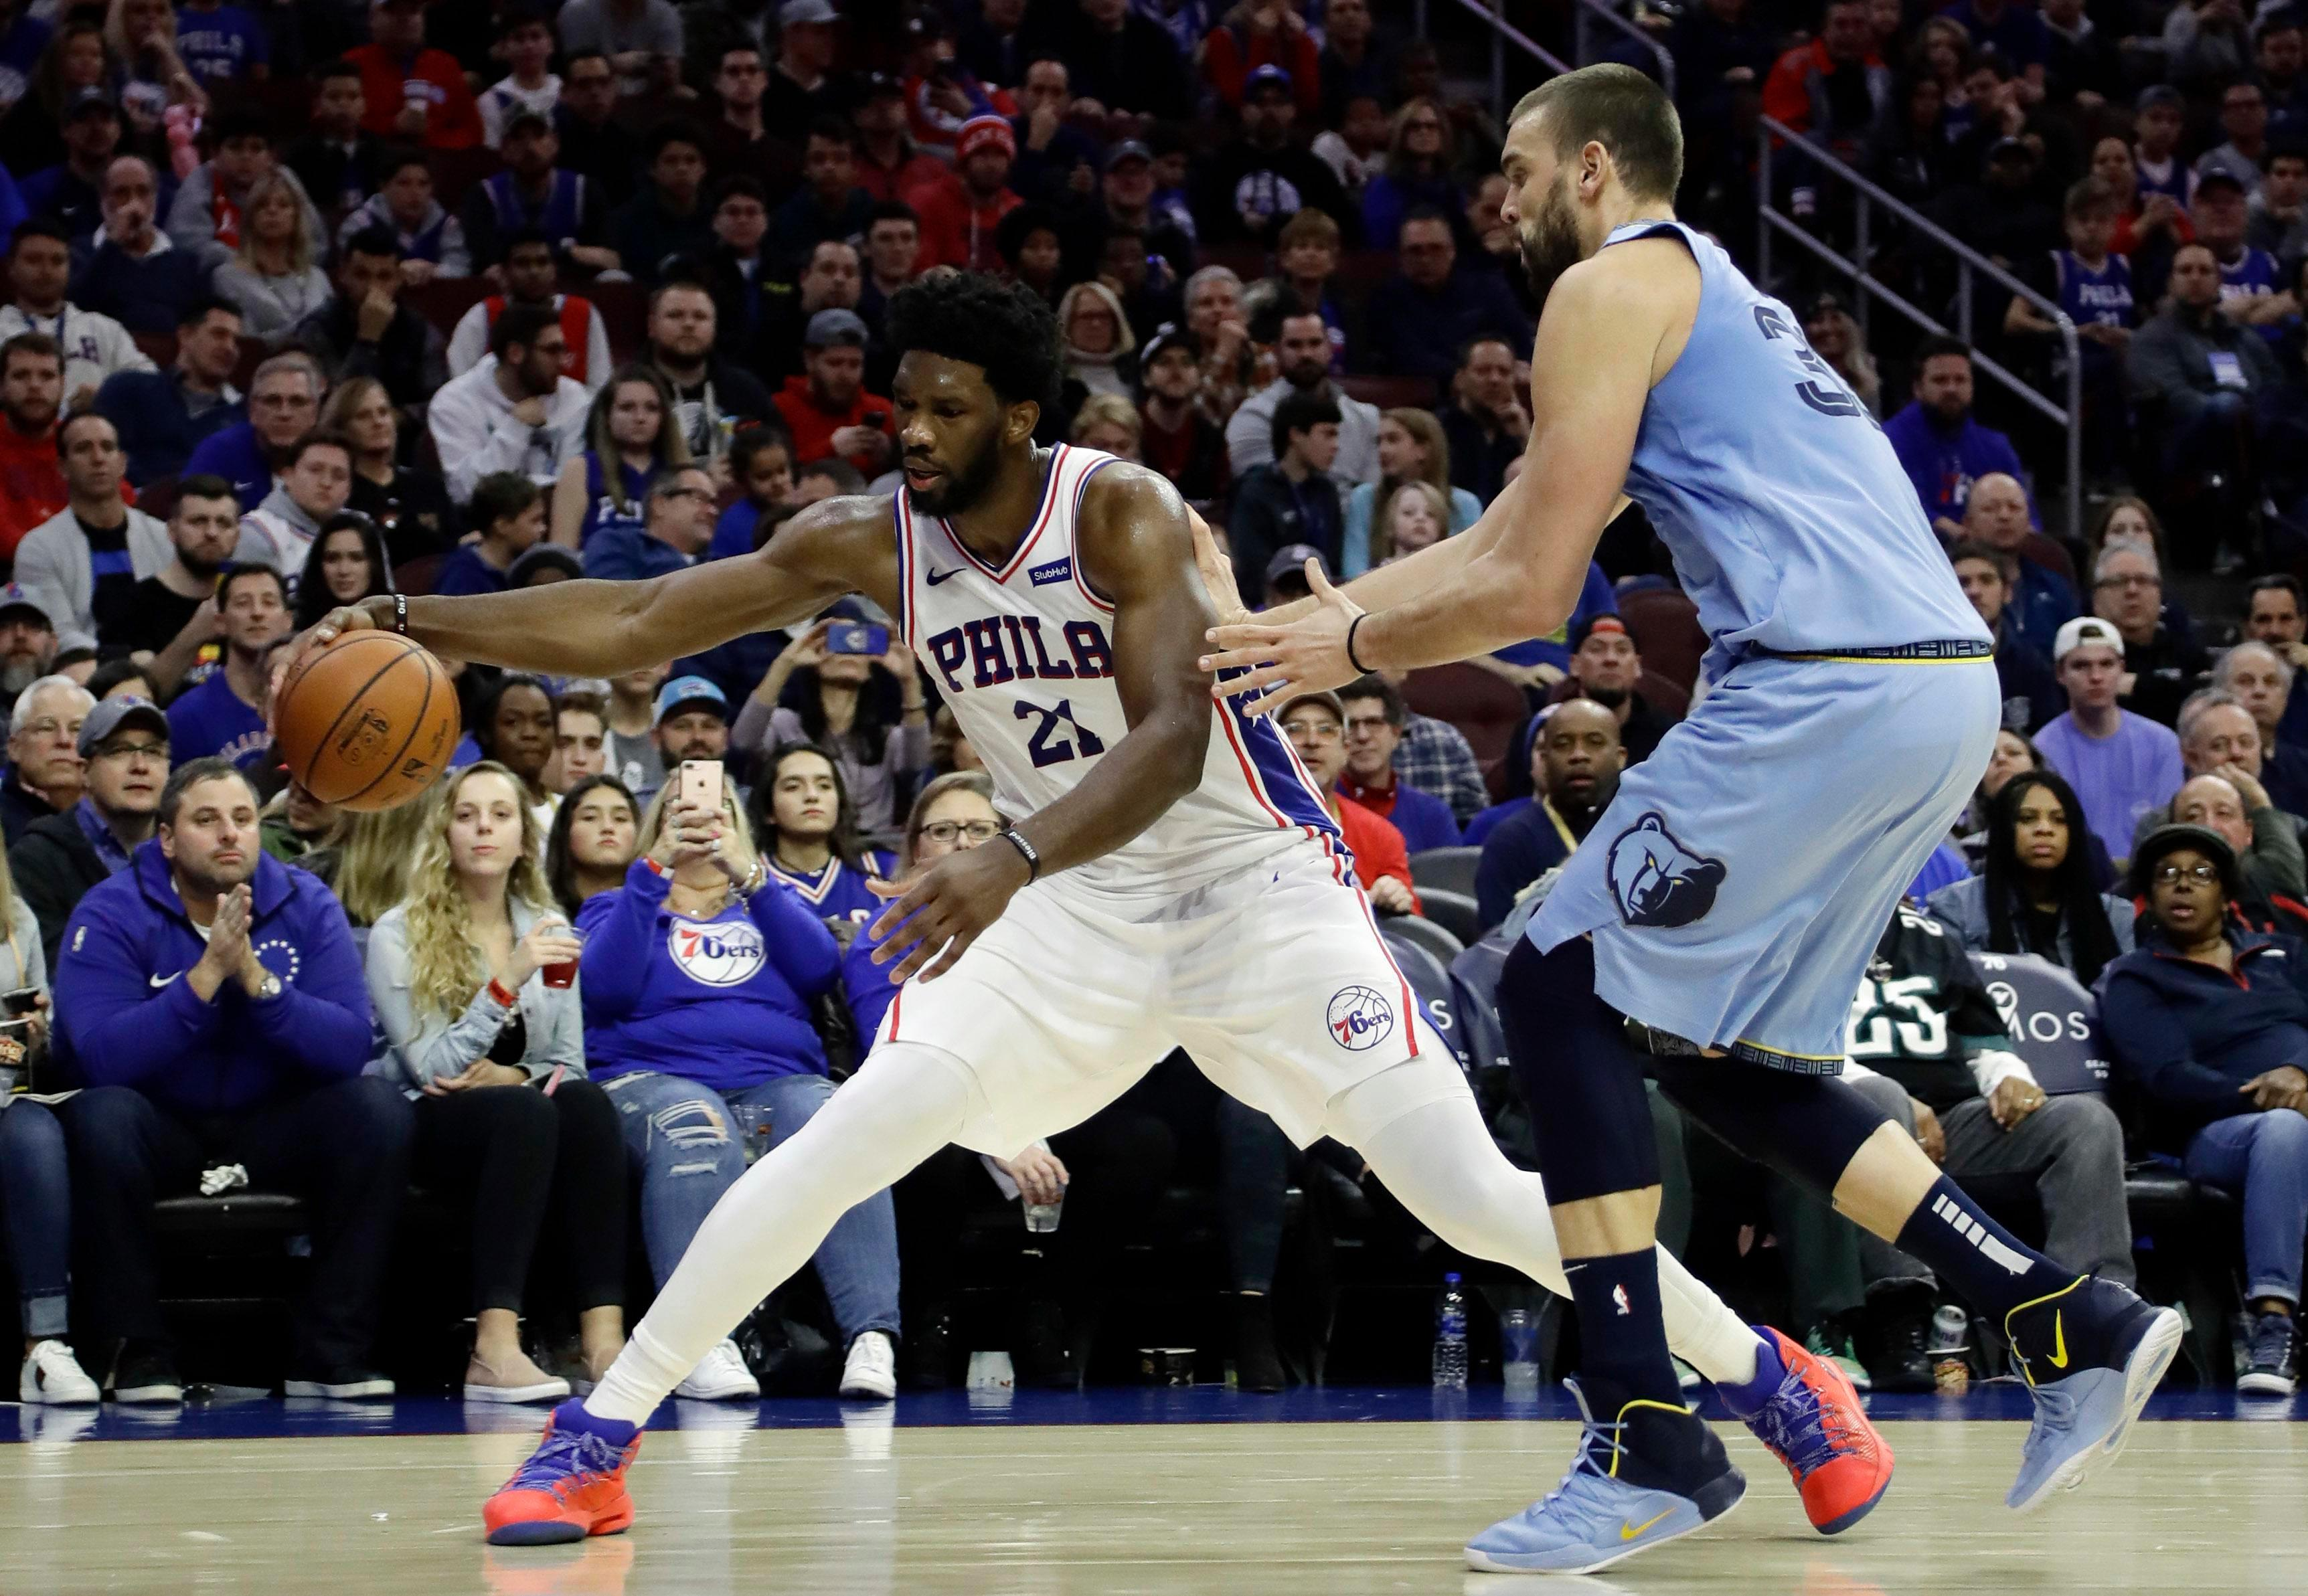 Joel Embiid only started basketball at 16 – but the Philadelphia 76ers star is making good on promise to be one of the best ever